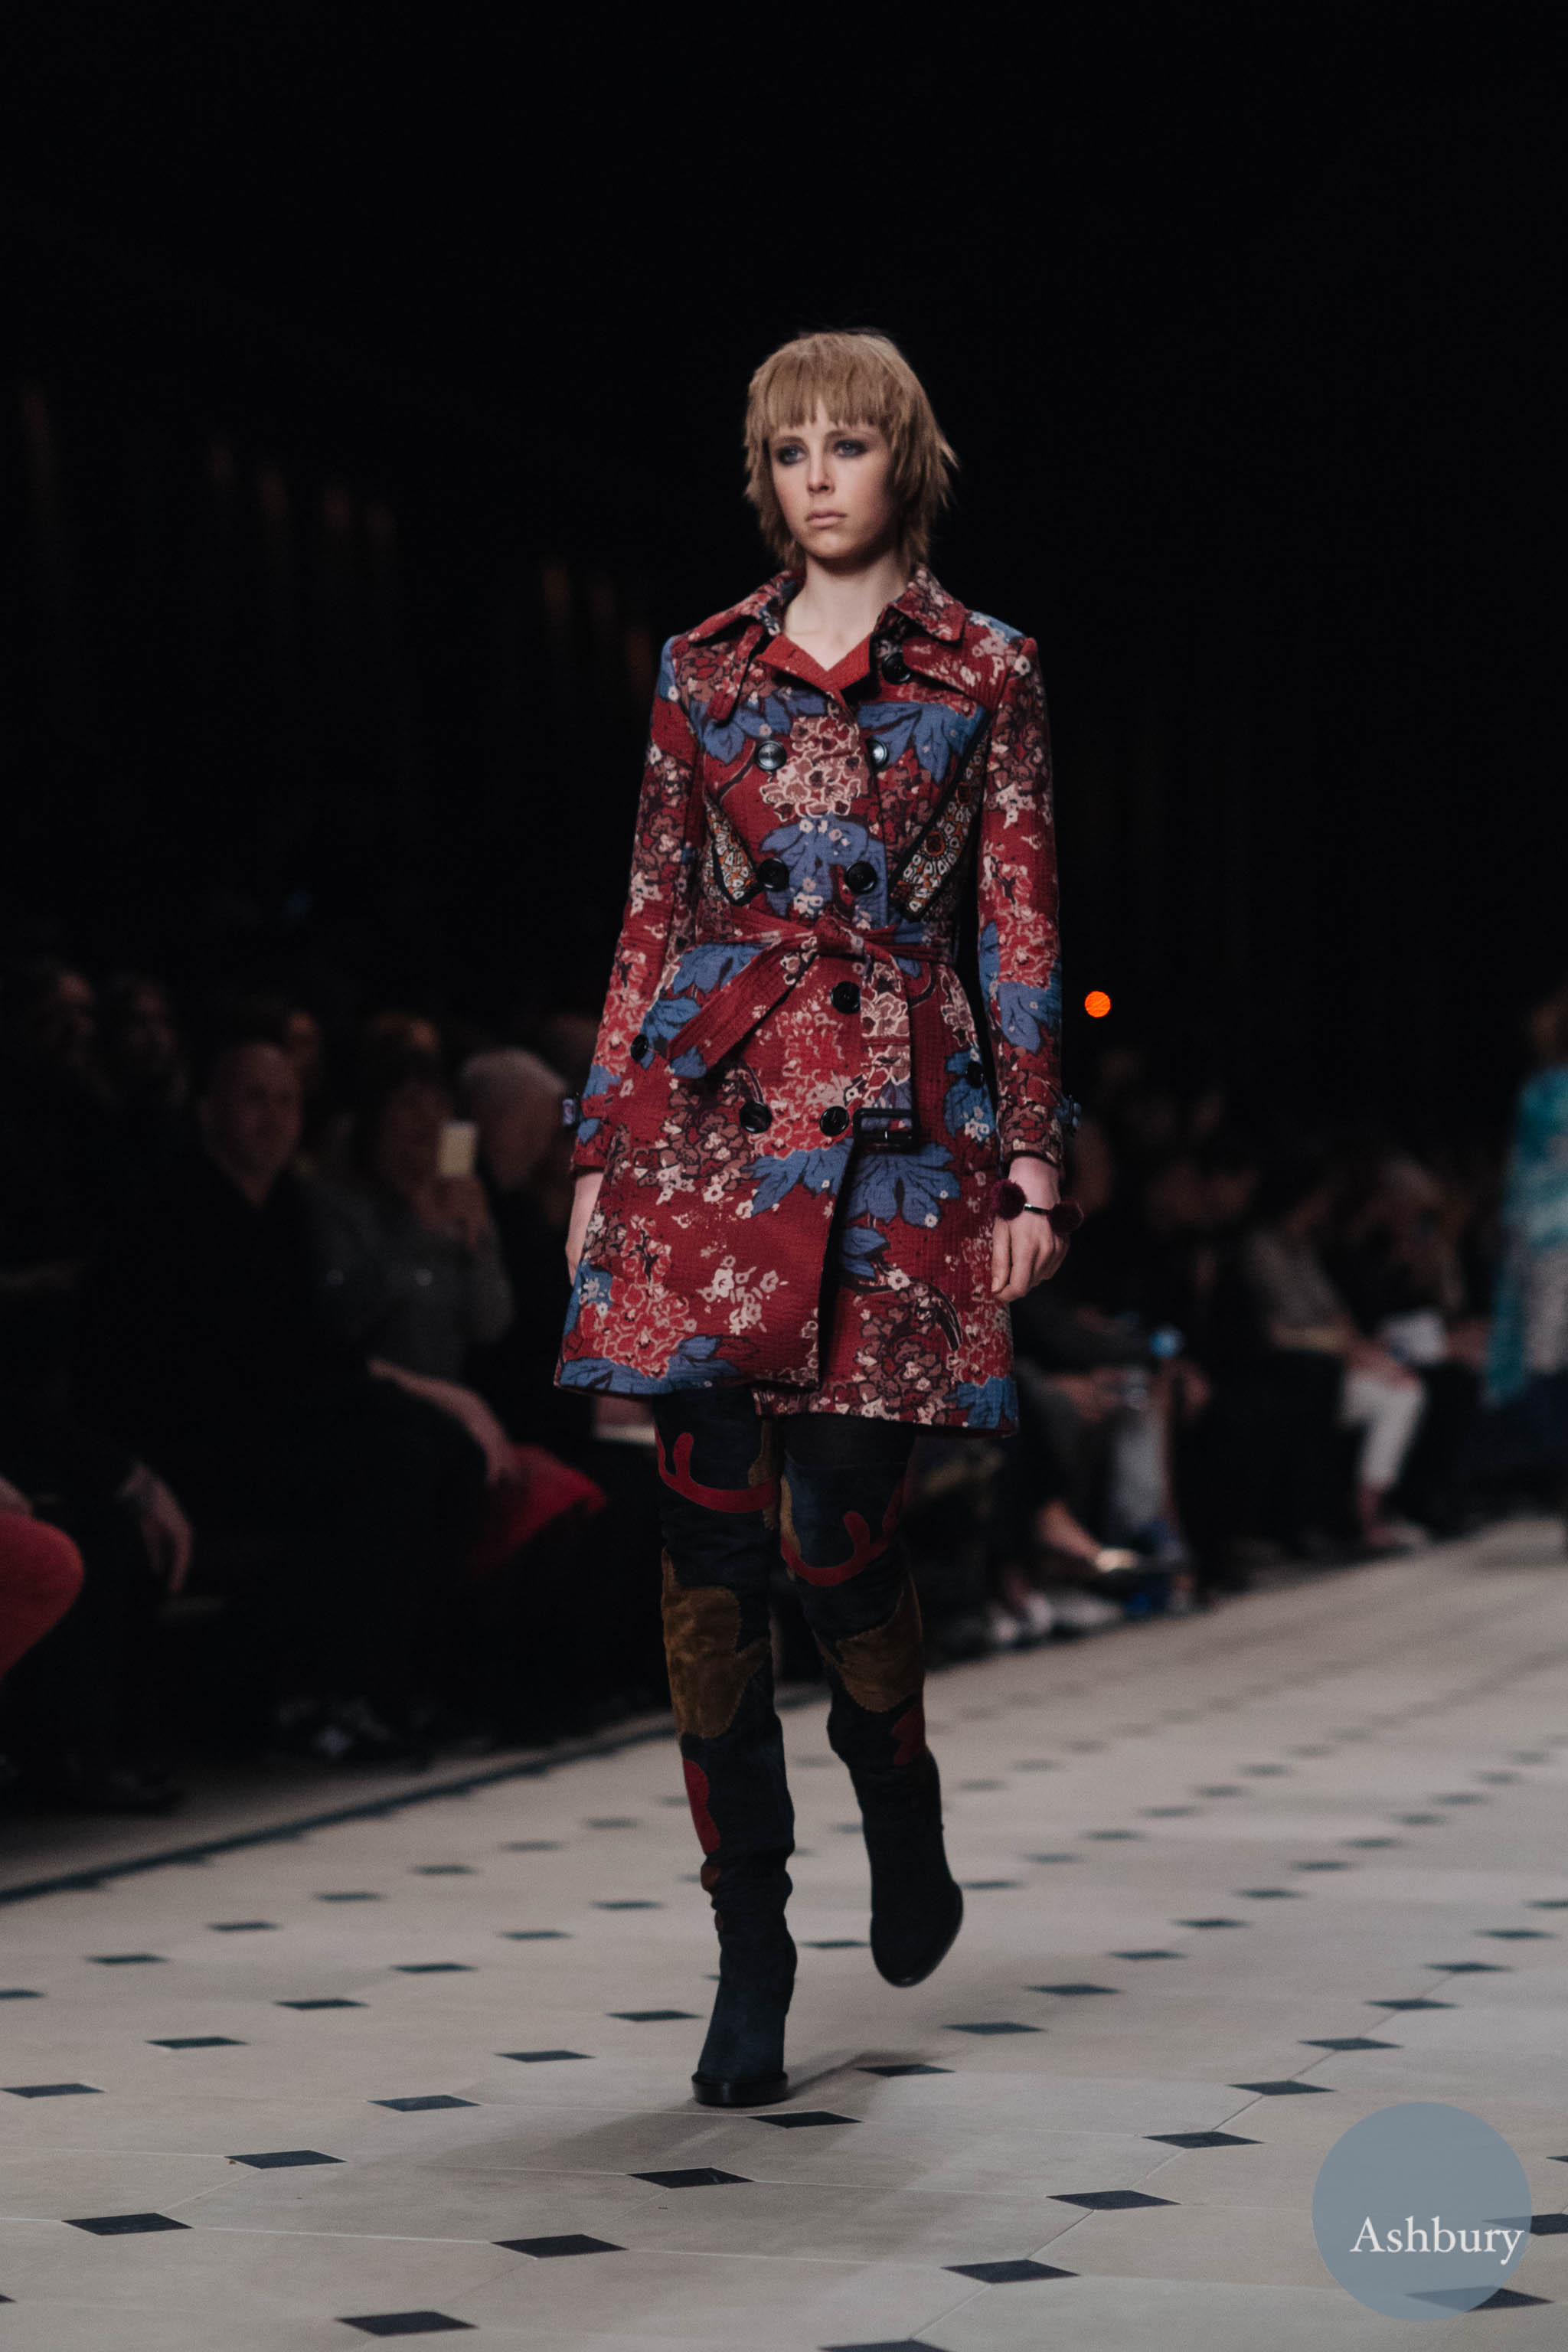 burberry fw15 edie campbell